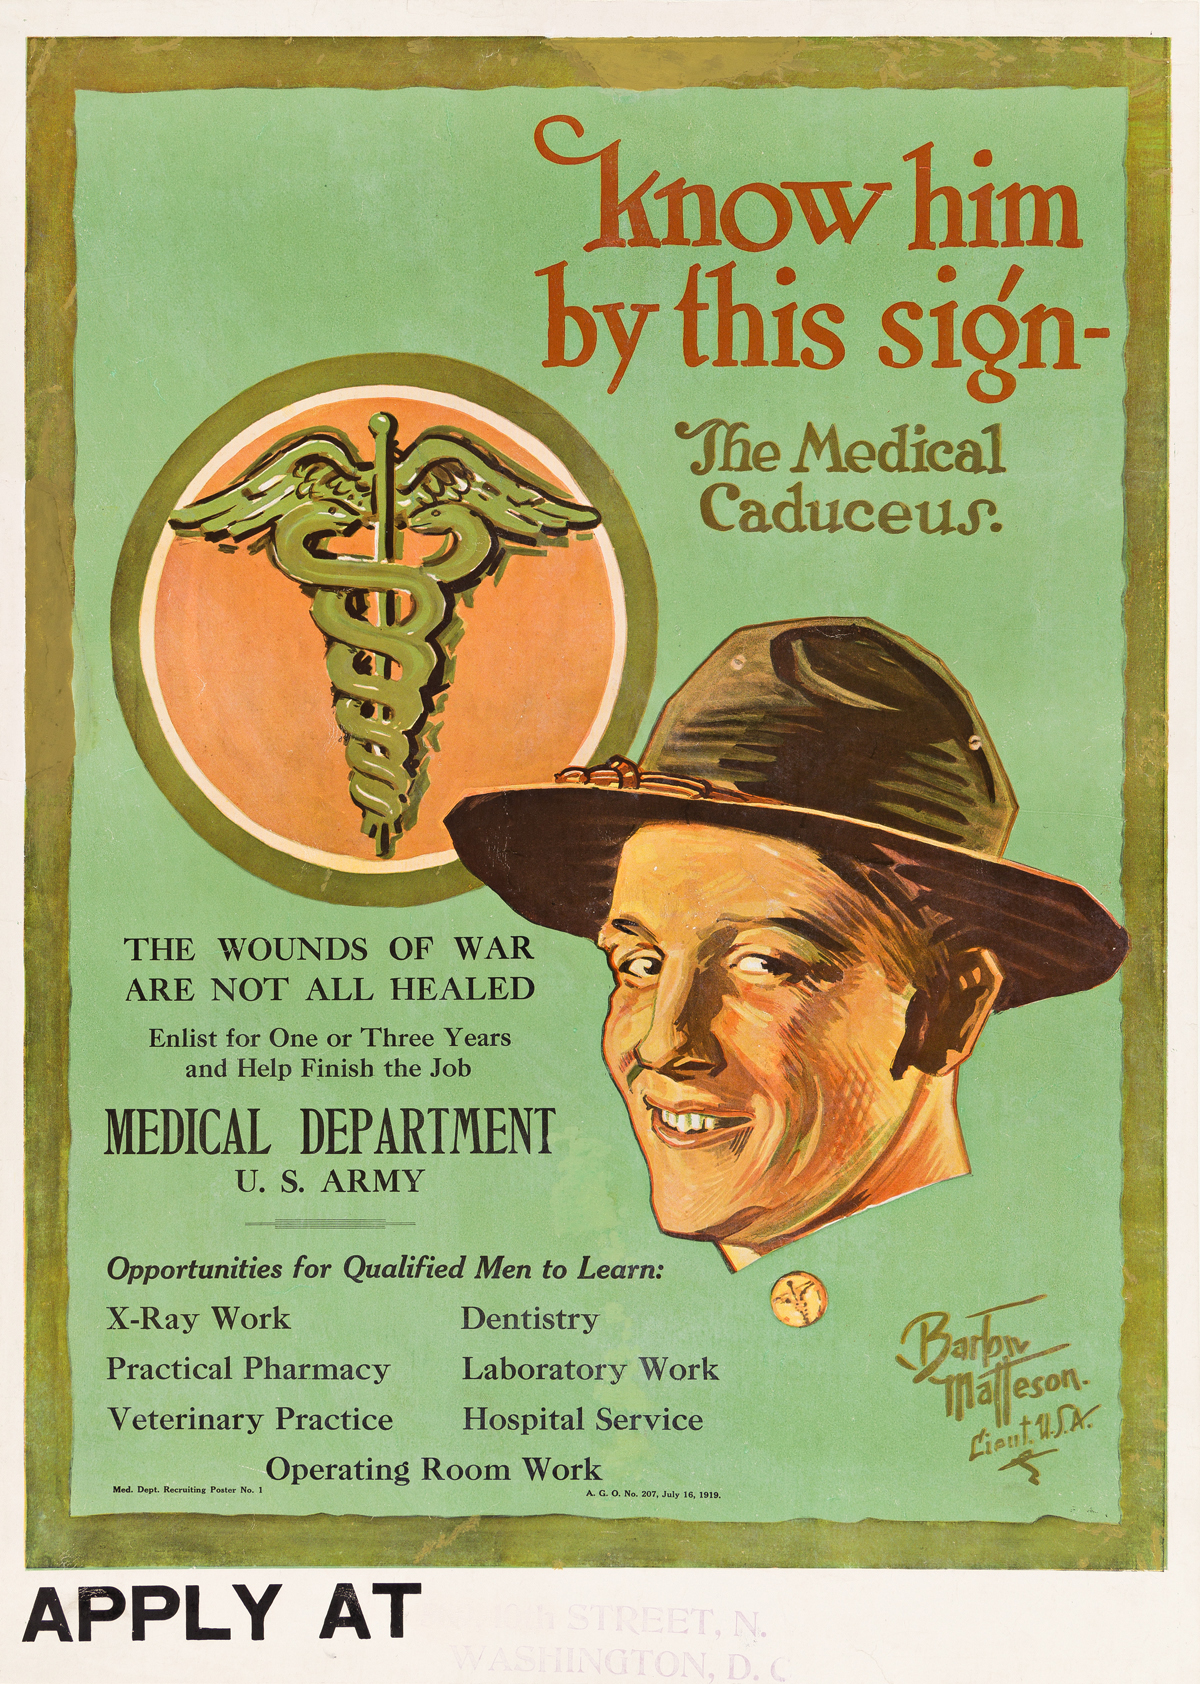 BARTOW MATTESON (1894-1984).  KNOW HIM BY THIS SIGN - THE MEDICAL CADUCEUS. 1919. 28½x20¼ inches, 72¼x51½ cm.